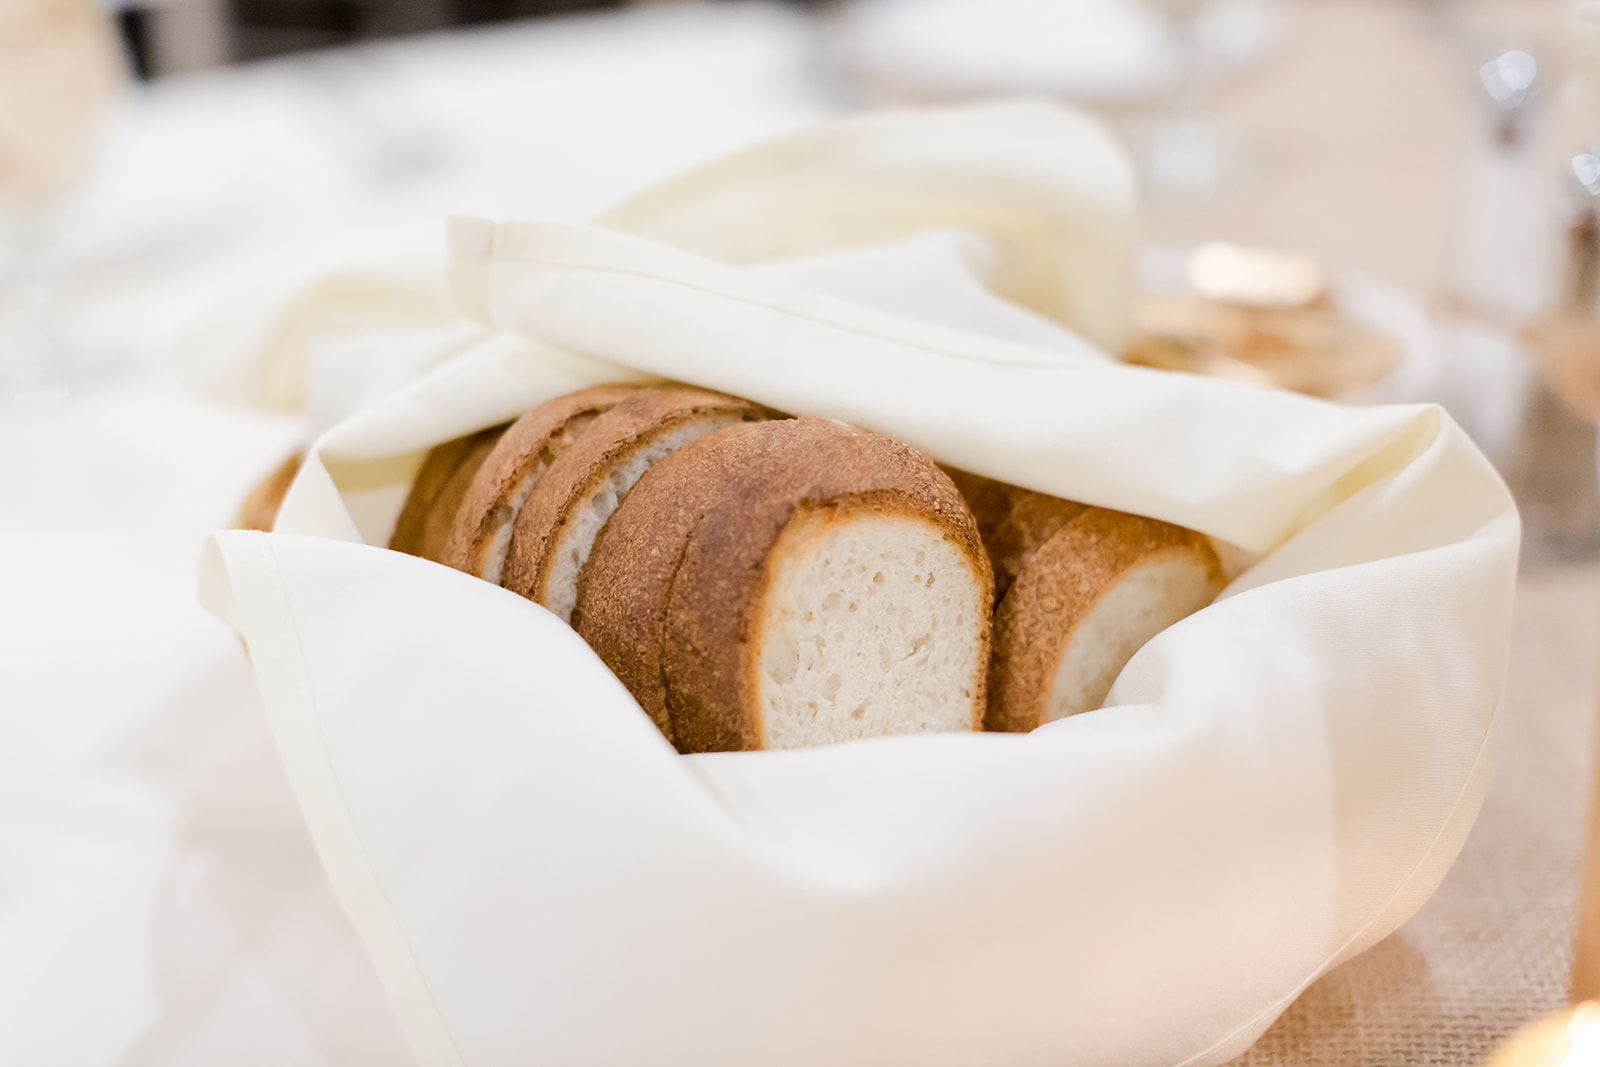 Photo by Lindsey White Photography | Social Events banquet hall at Royal Cliff south metro Minnesota | delicious bread but also offer gluten free options